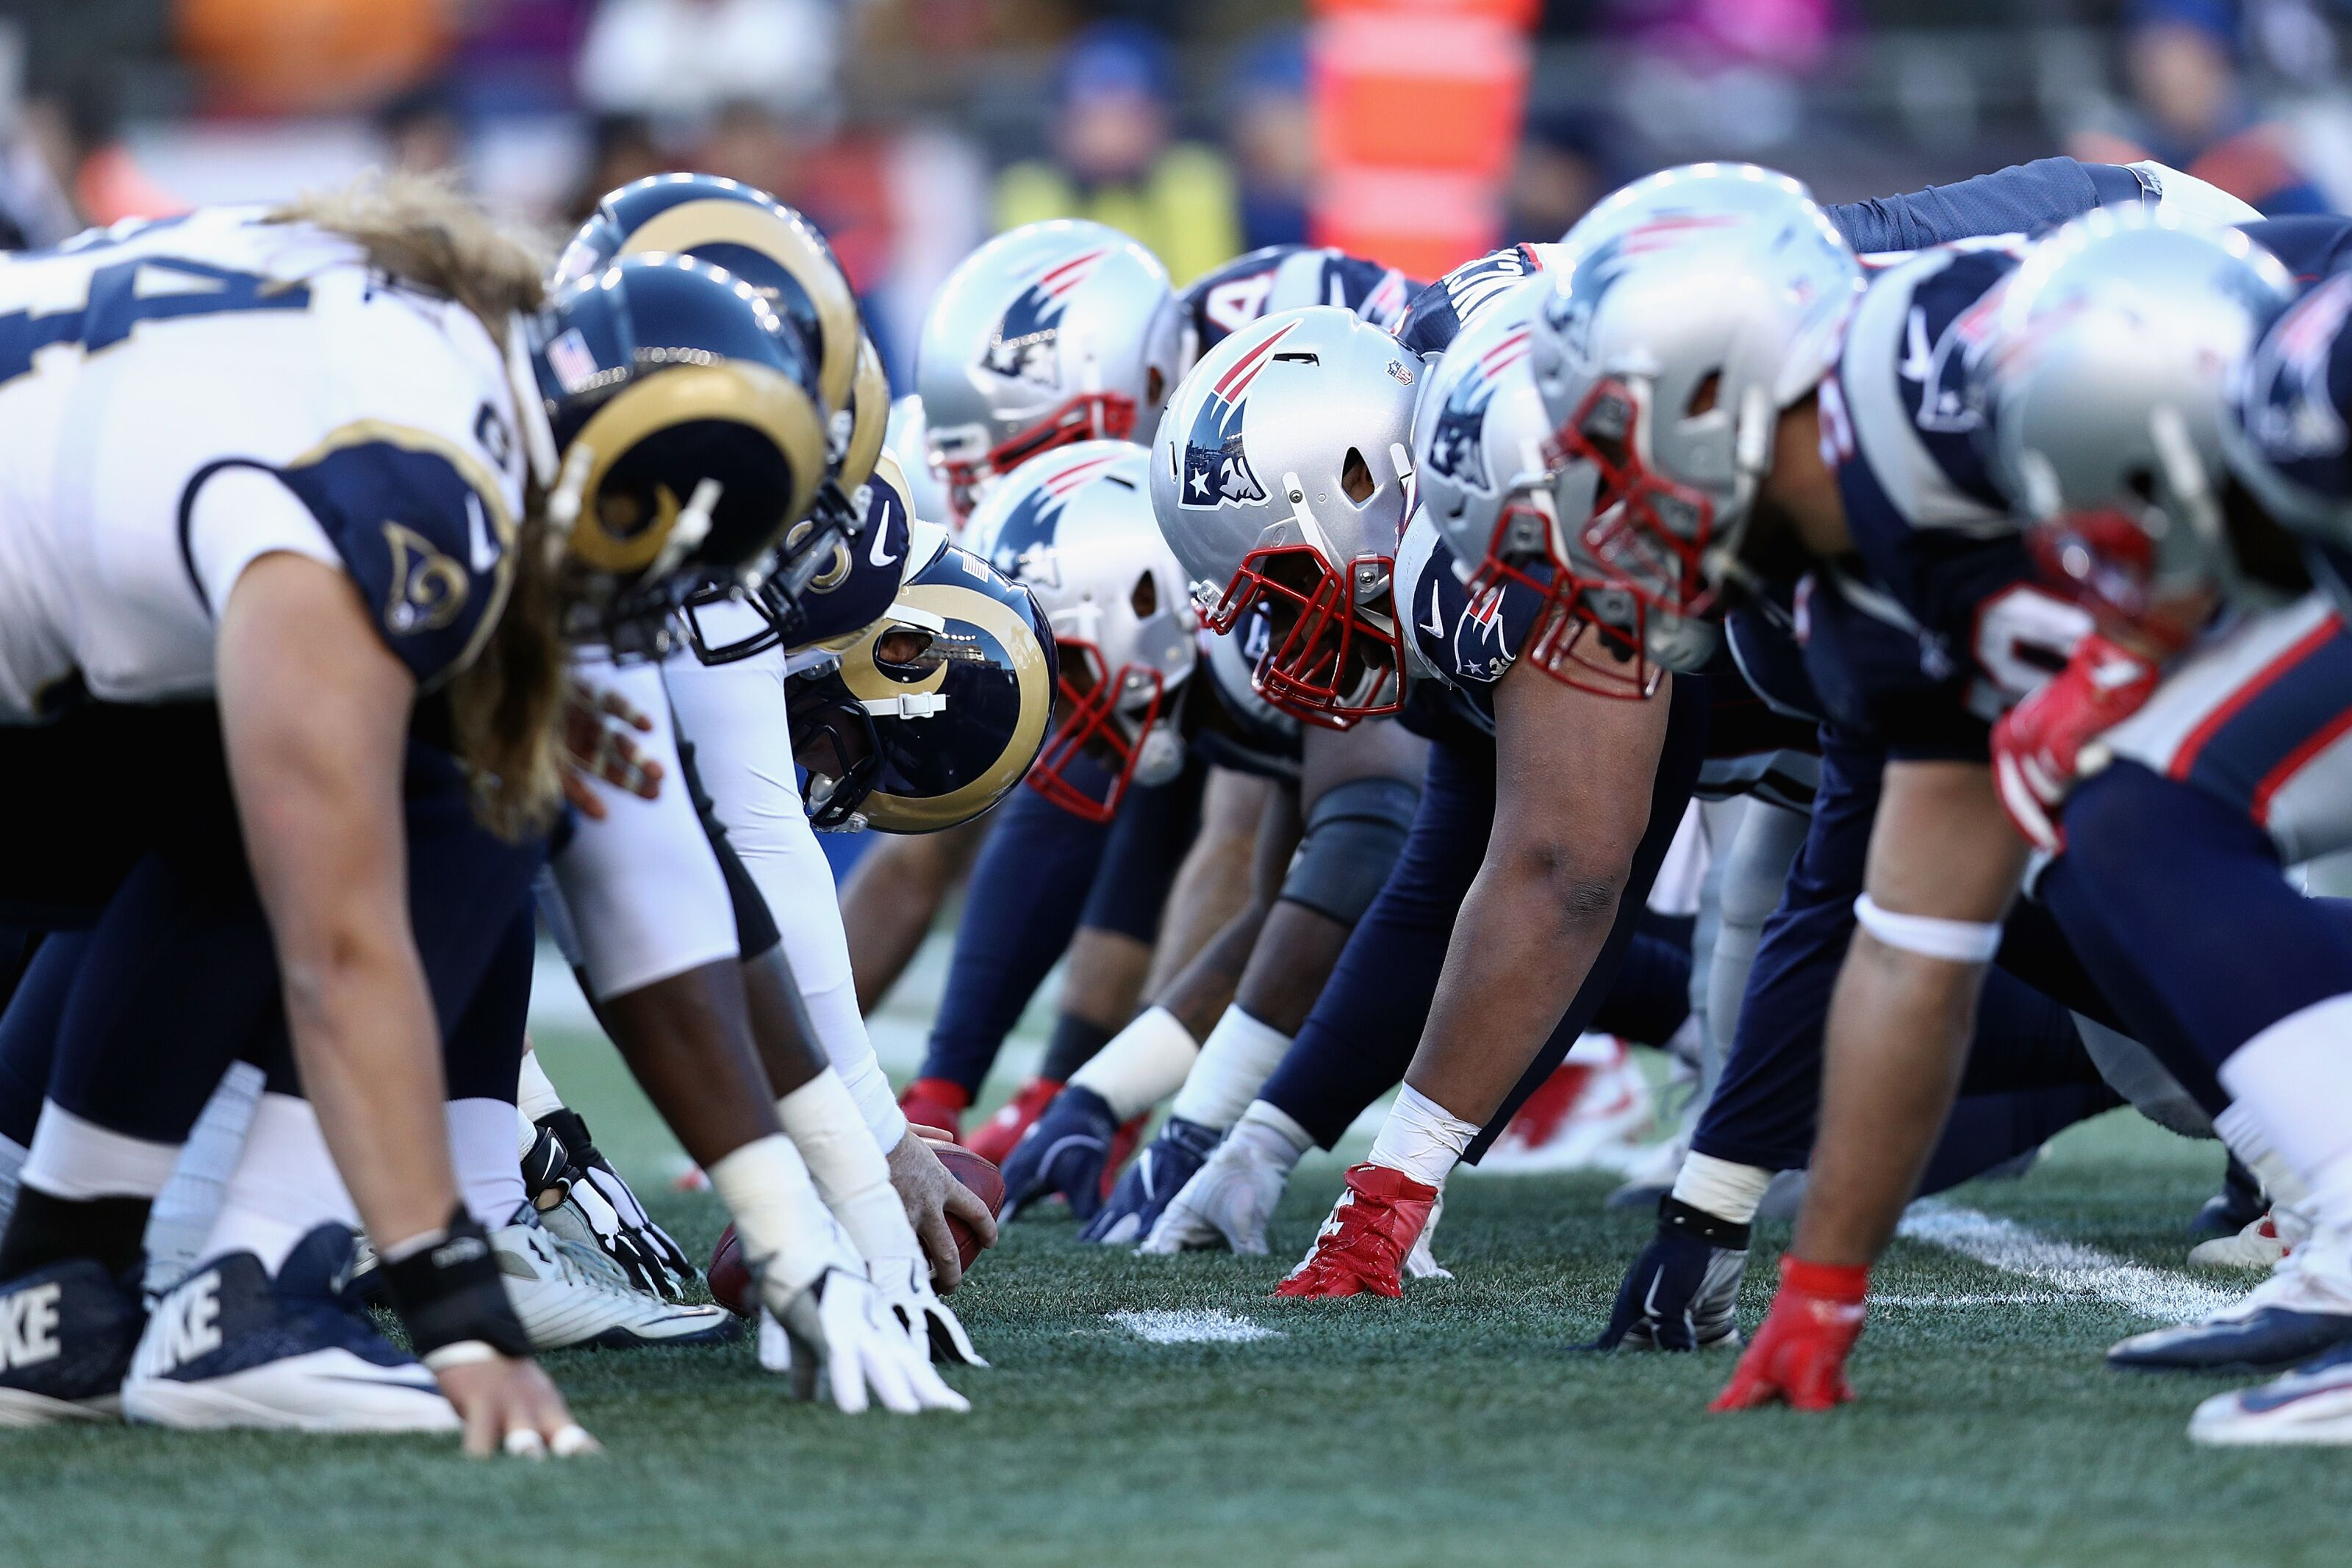 Super Bowl LIII: an early scouting report on N.E. Patriots/L.A. Rams